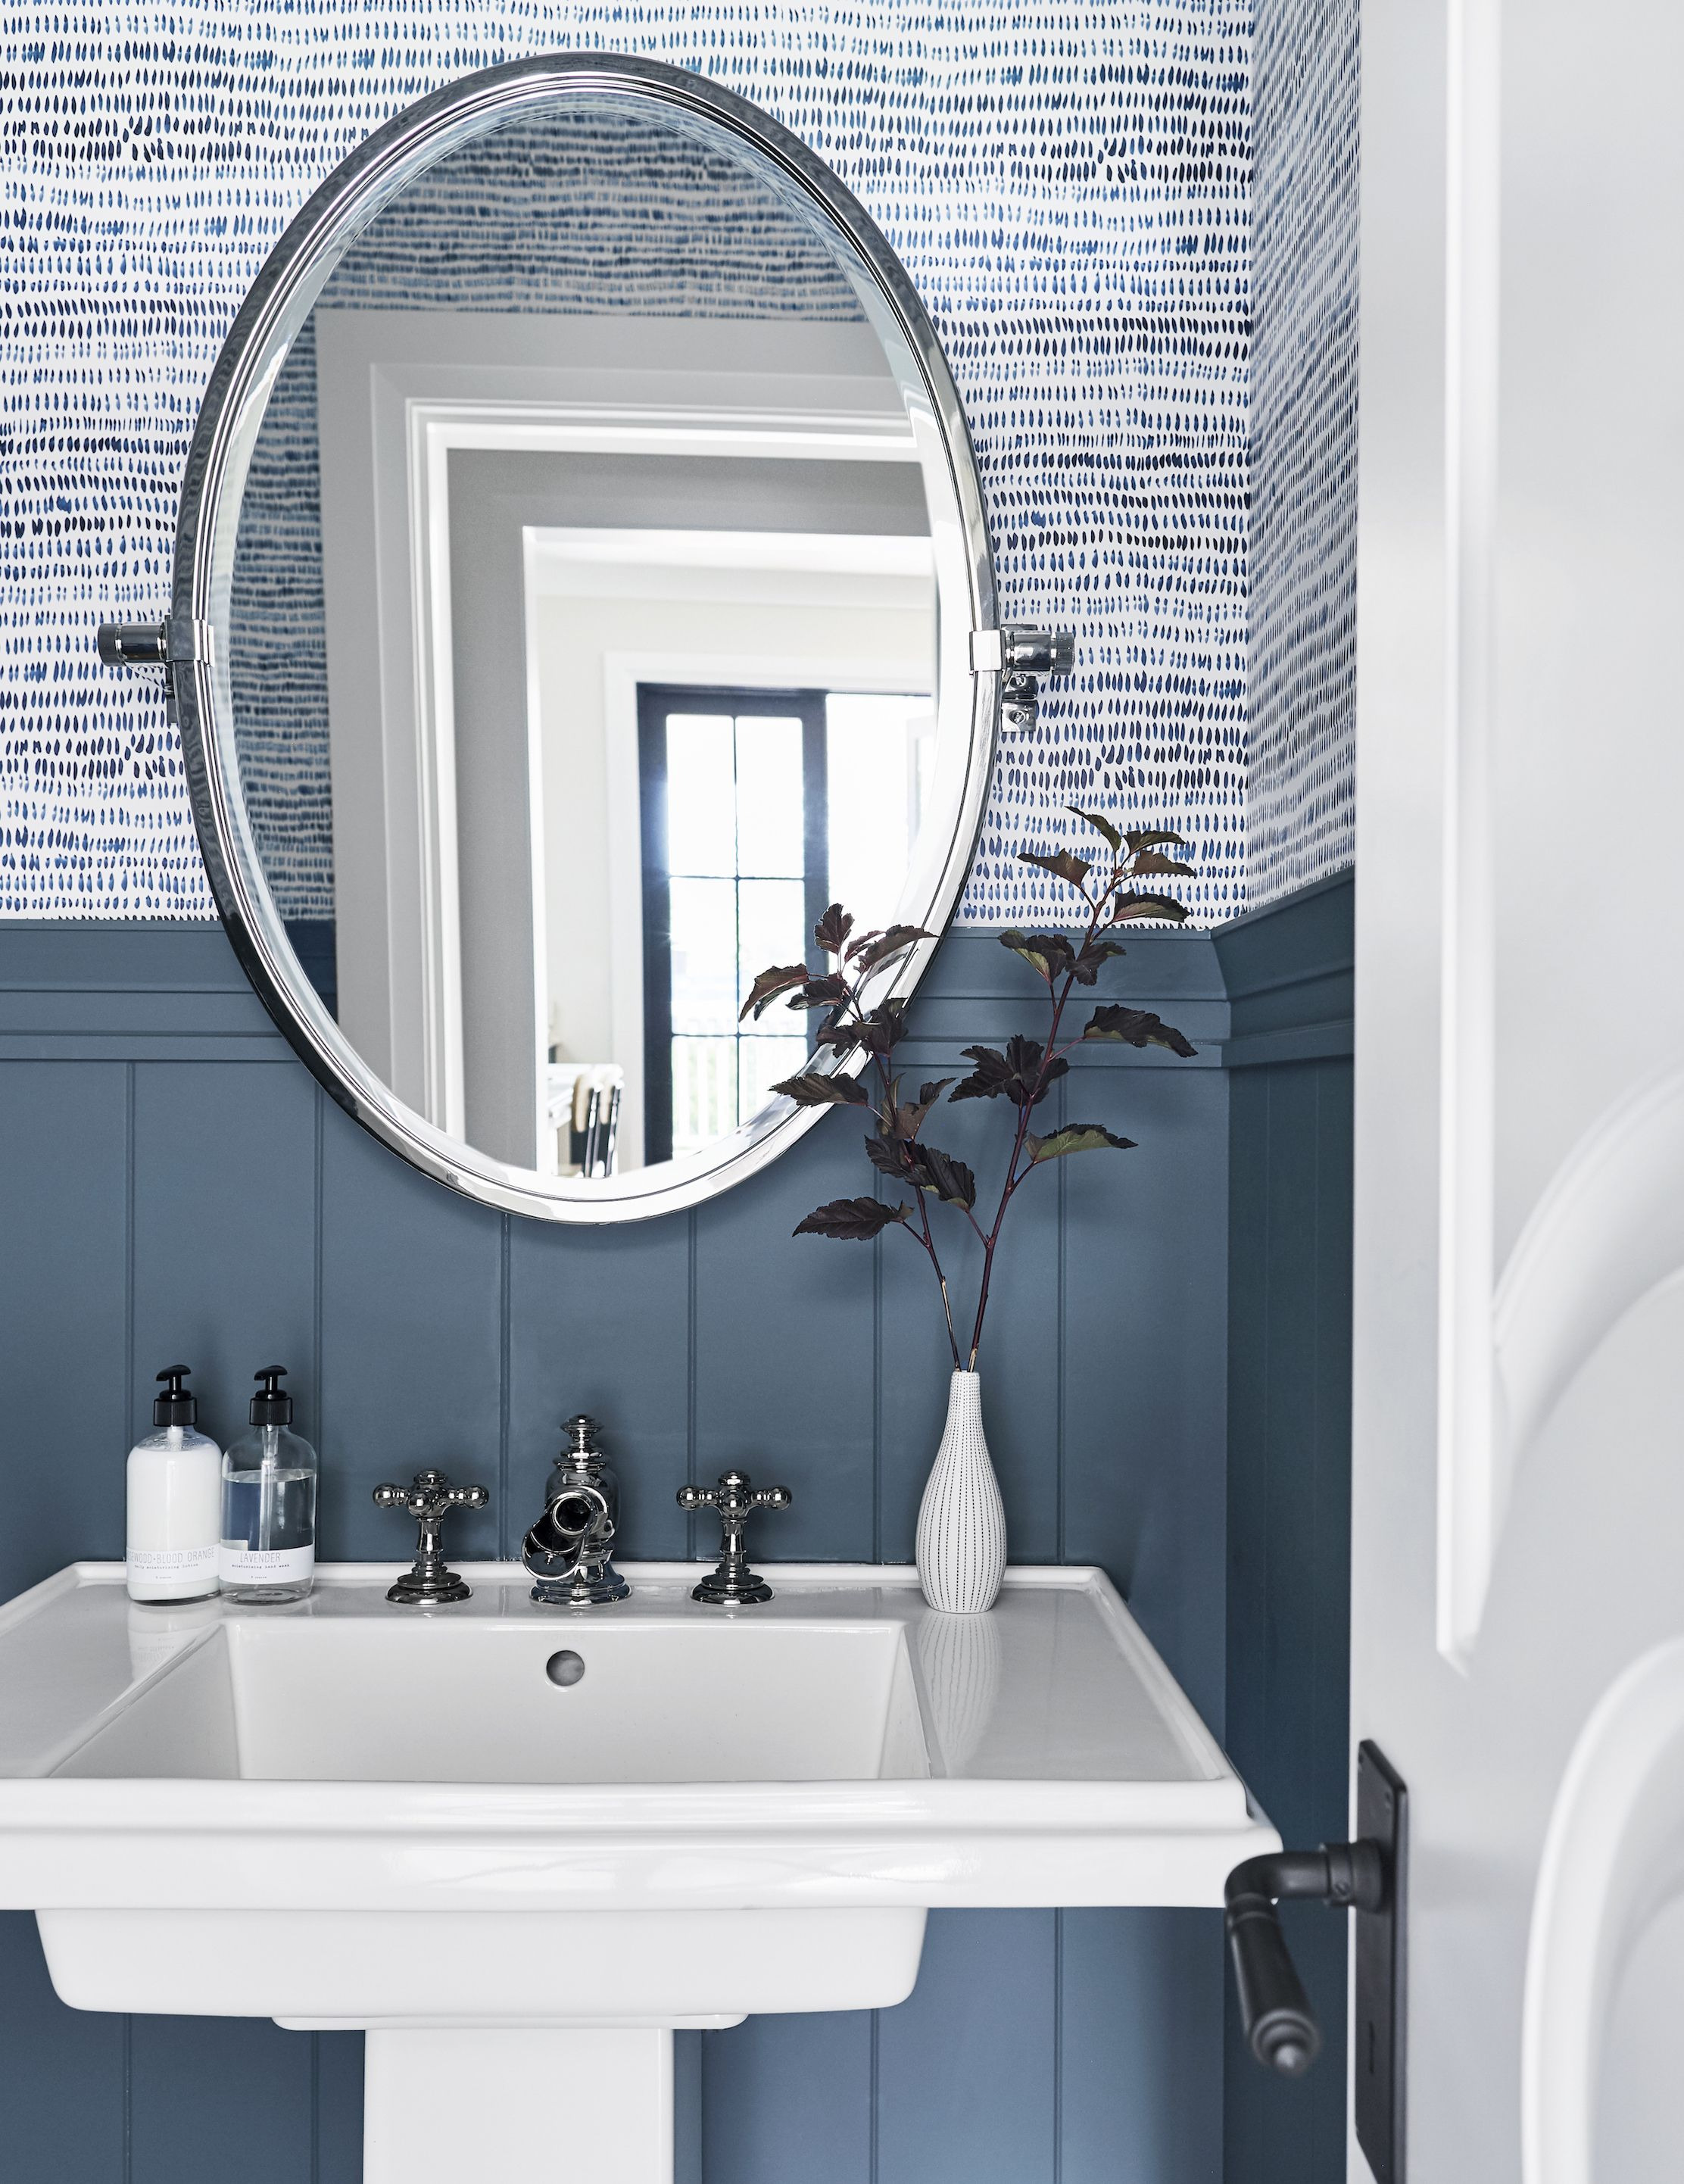 Bathroom Wallpaper Decorating Ideas Awesome 25 Bathroom Wallpaper Ideas Best Wallpaper for Bathrooms